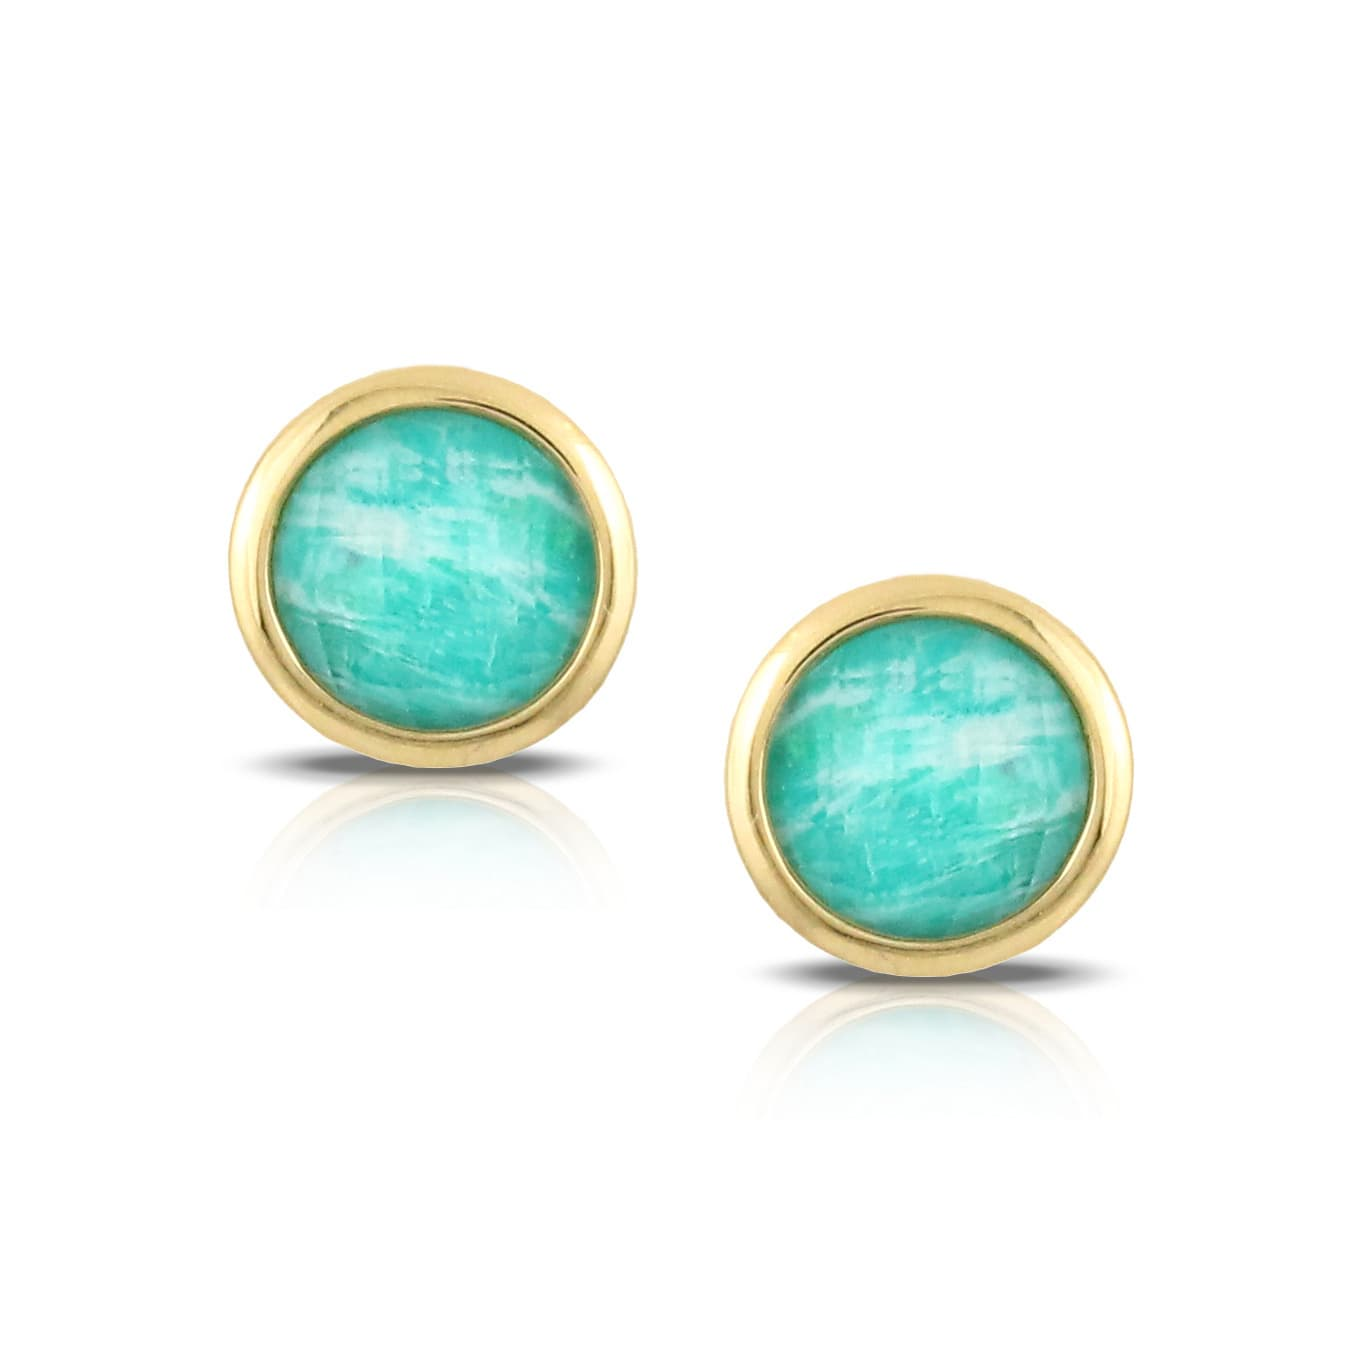 18K YELLOW GOLD EARRING WITH WHITE TOPAZ OVER AMAZONITE